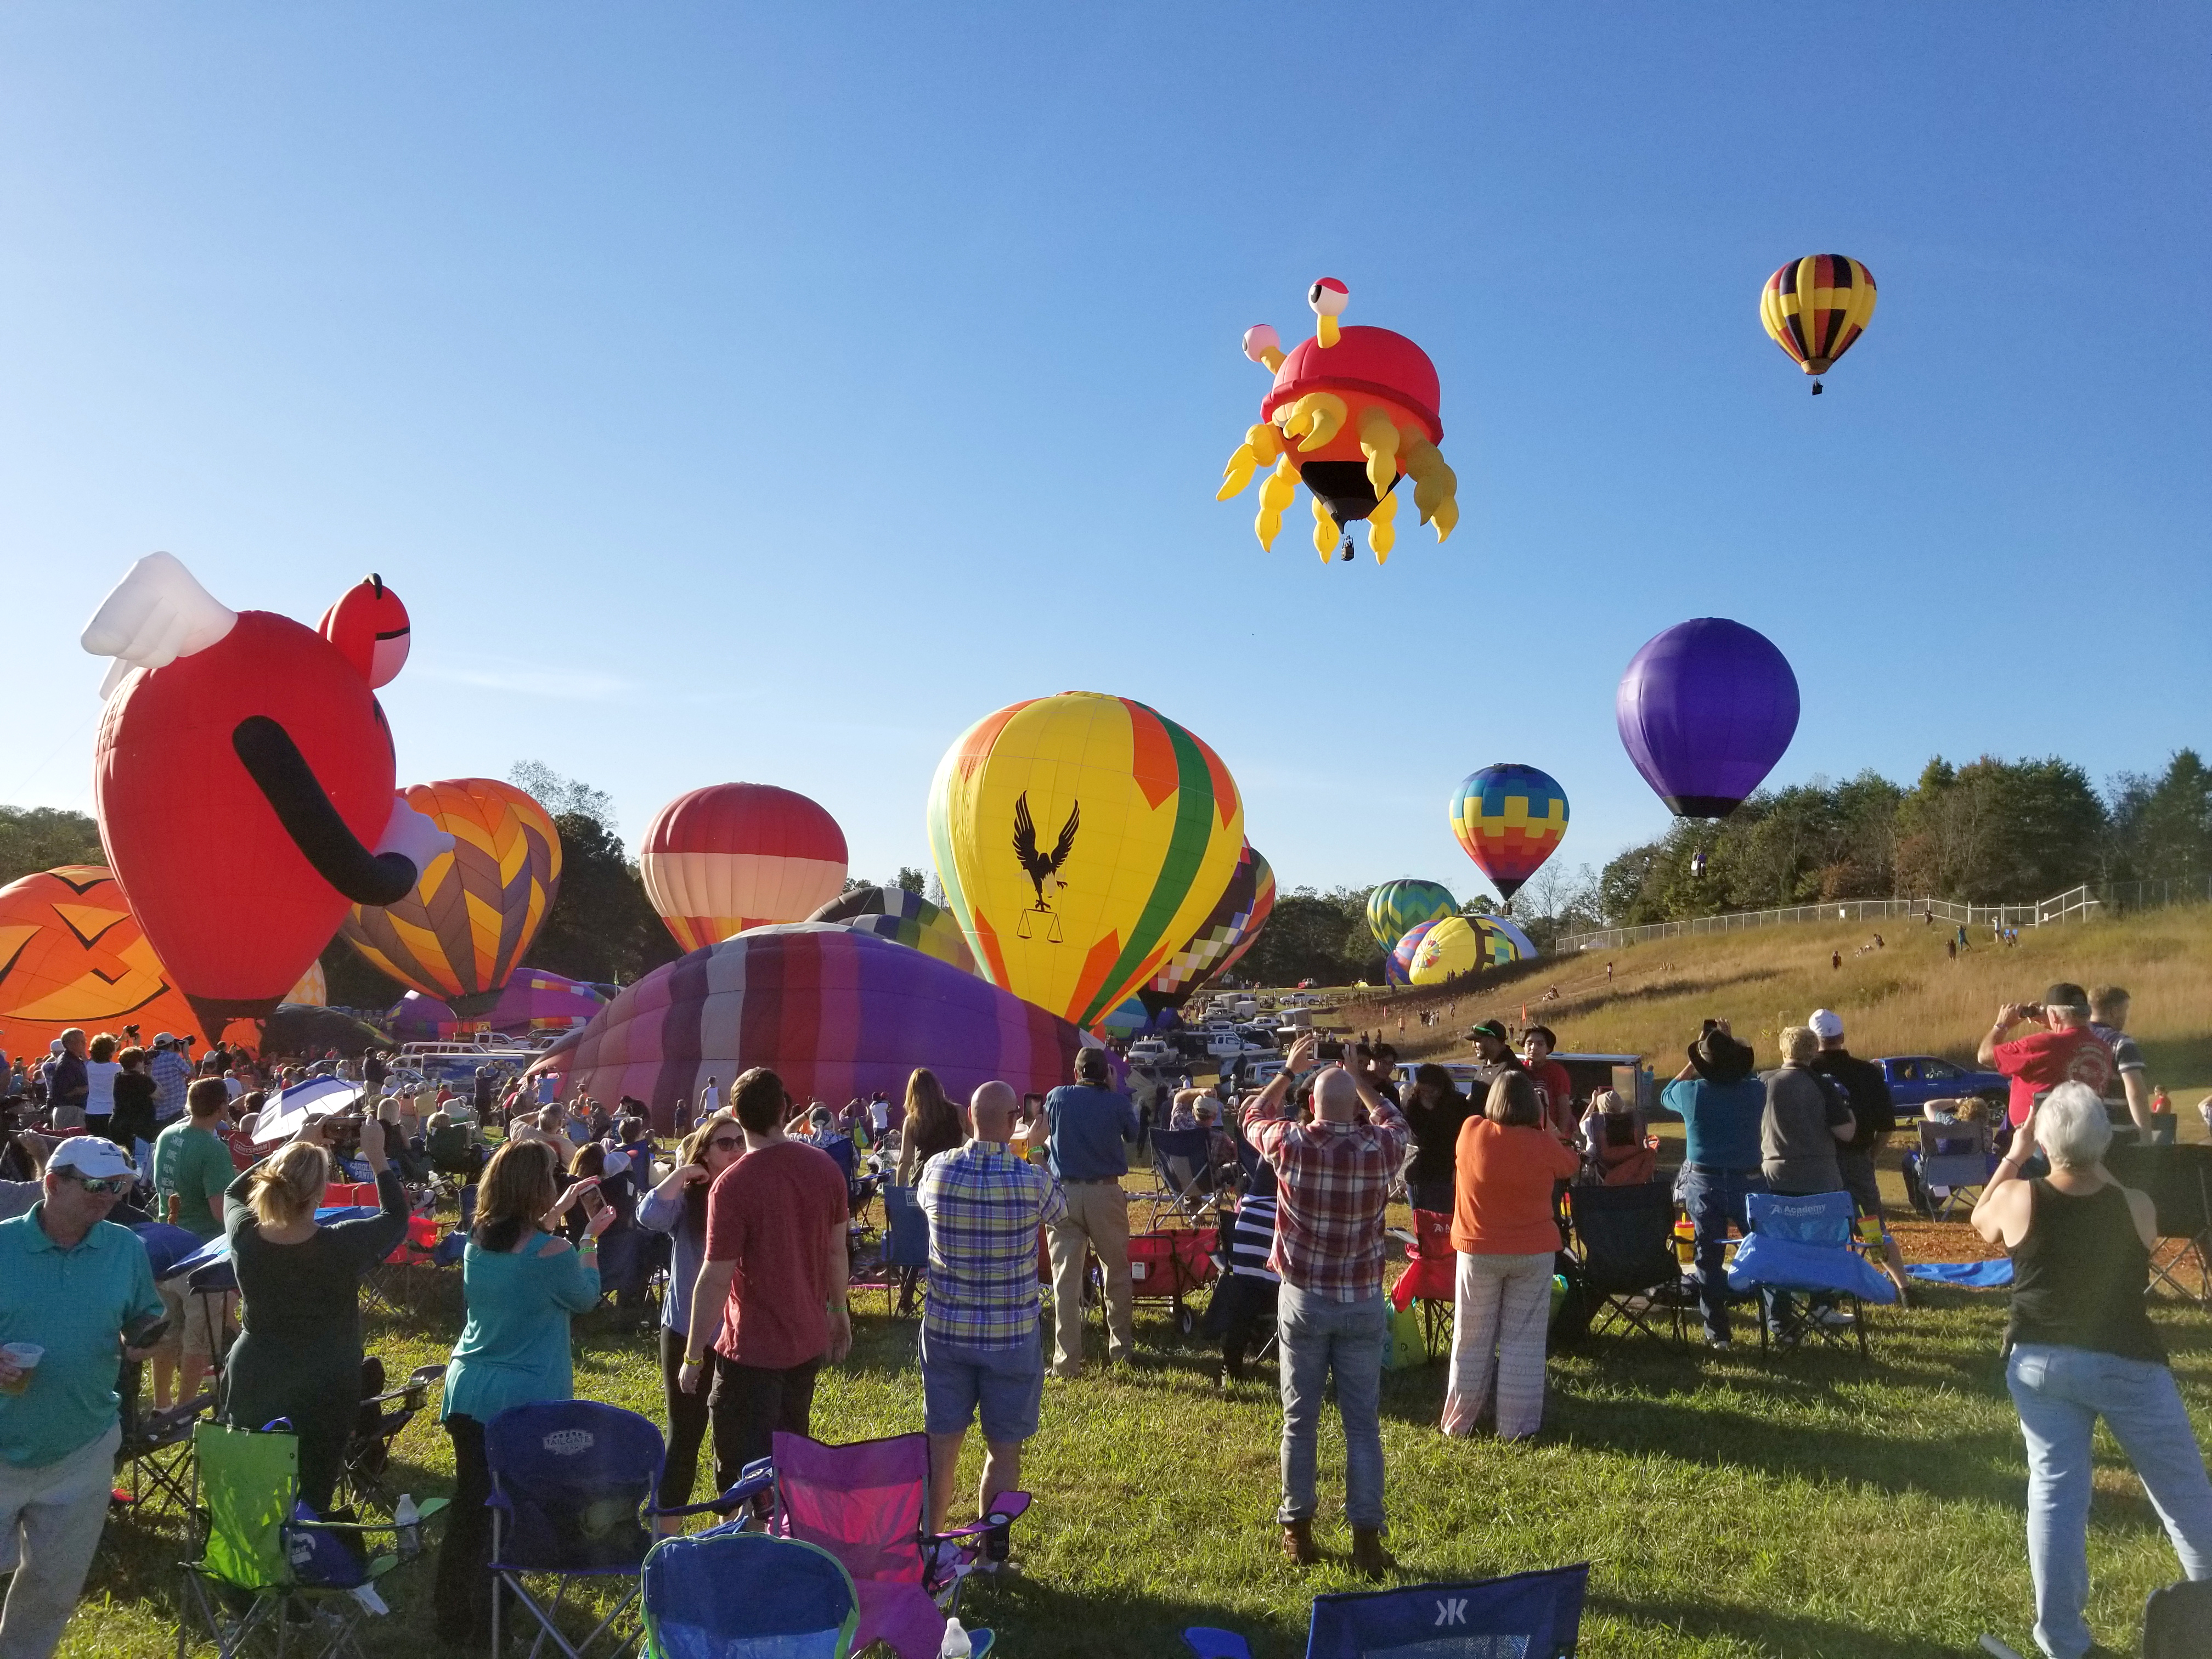 20171020_Chinook BalloonFest NC Characters.jpg